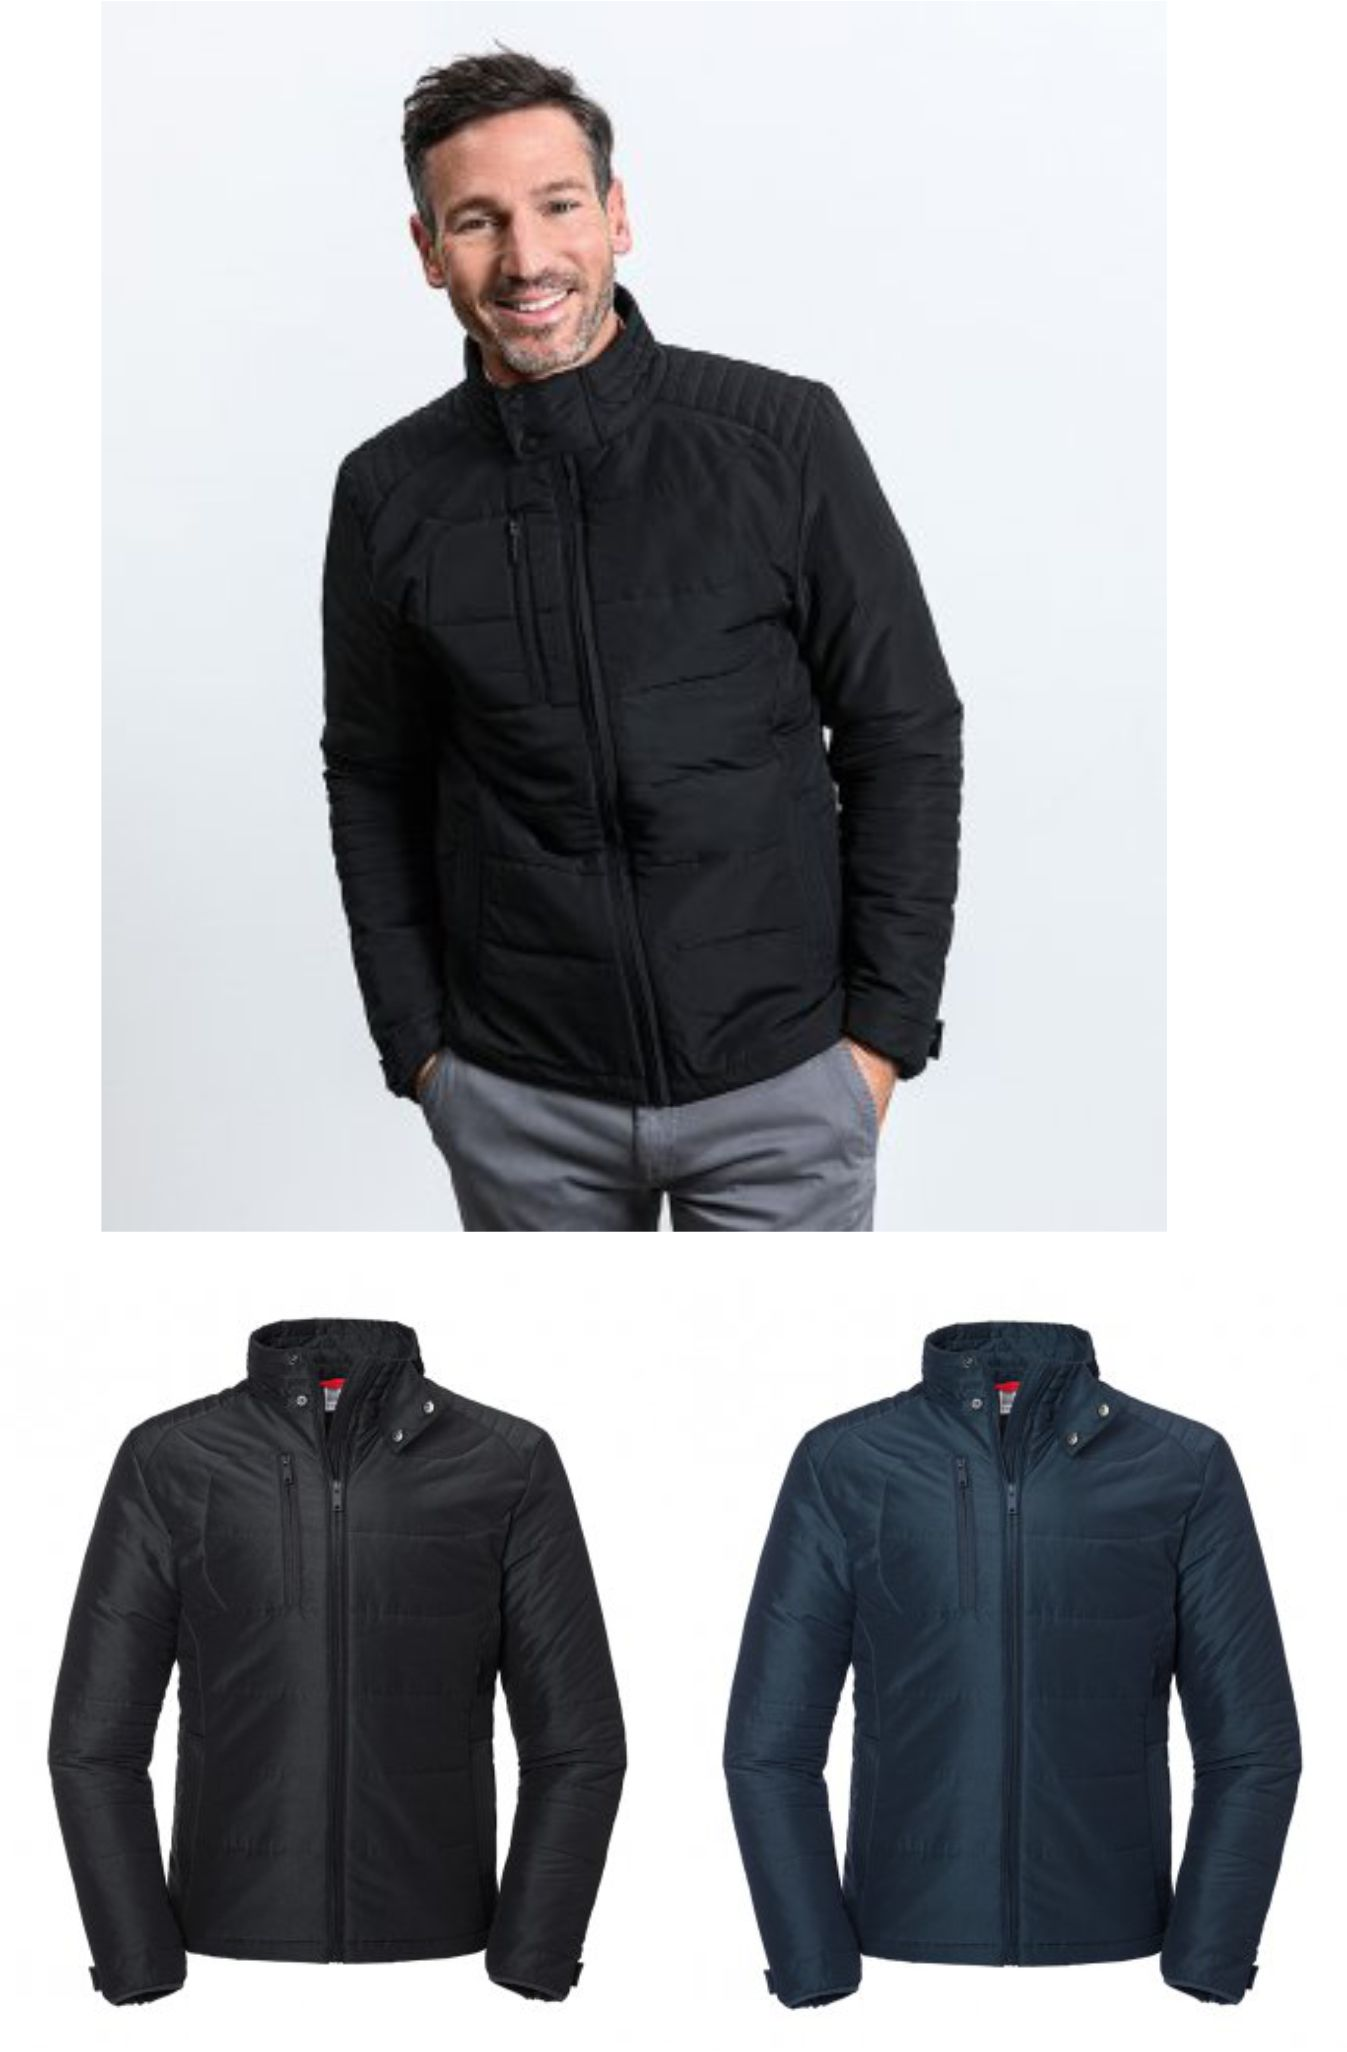 430M Russell Cross Padded Jacket